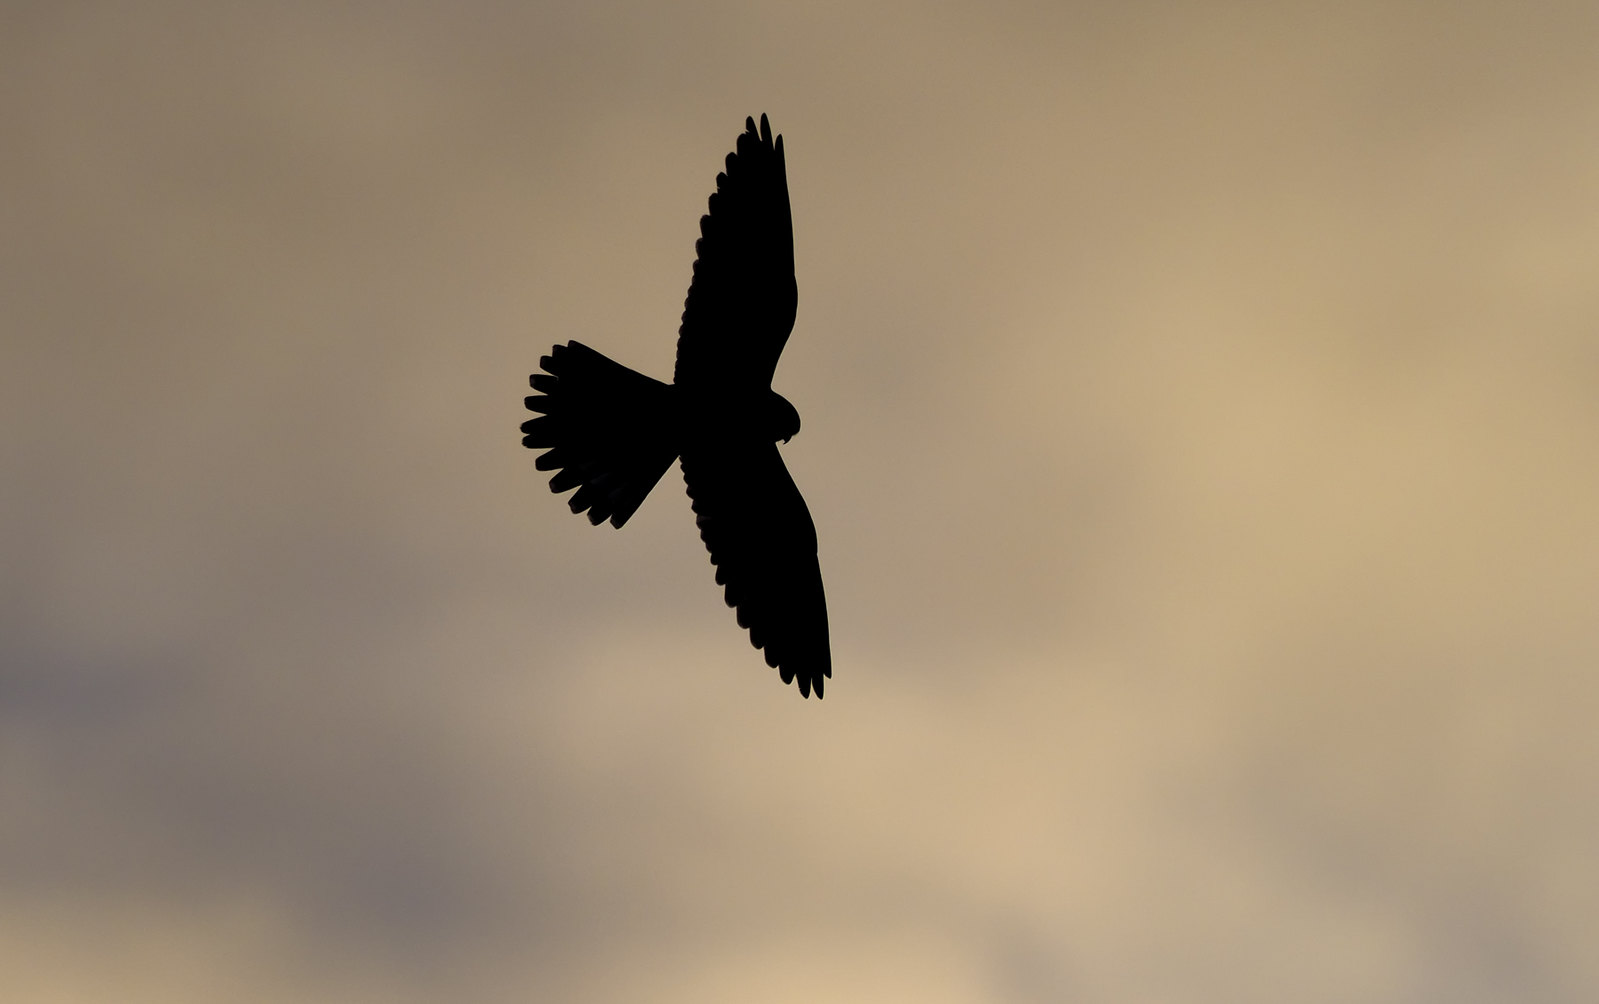 Kestrel Hunting at dusk